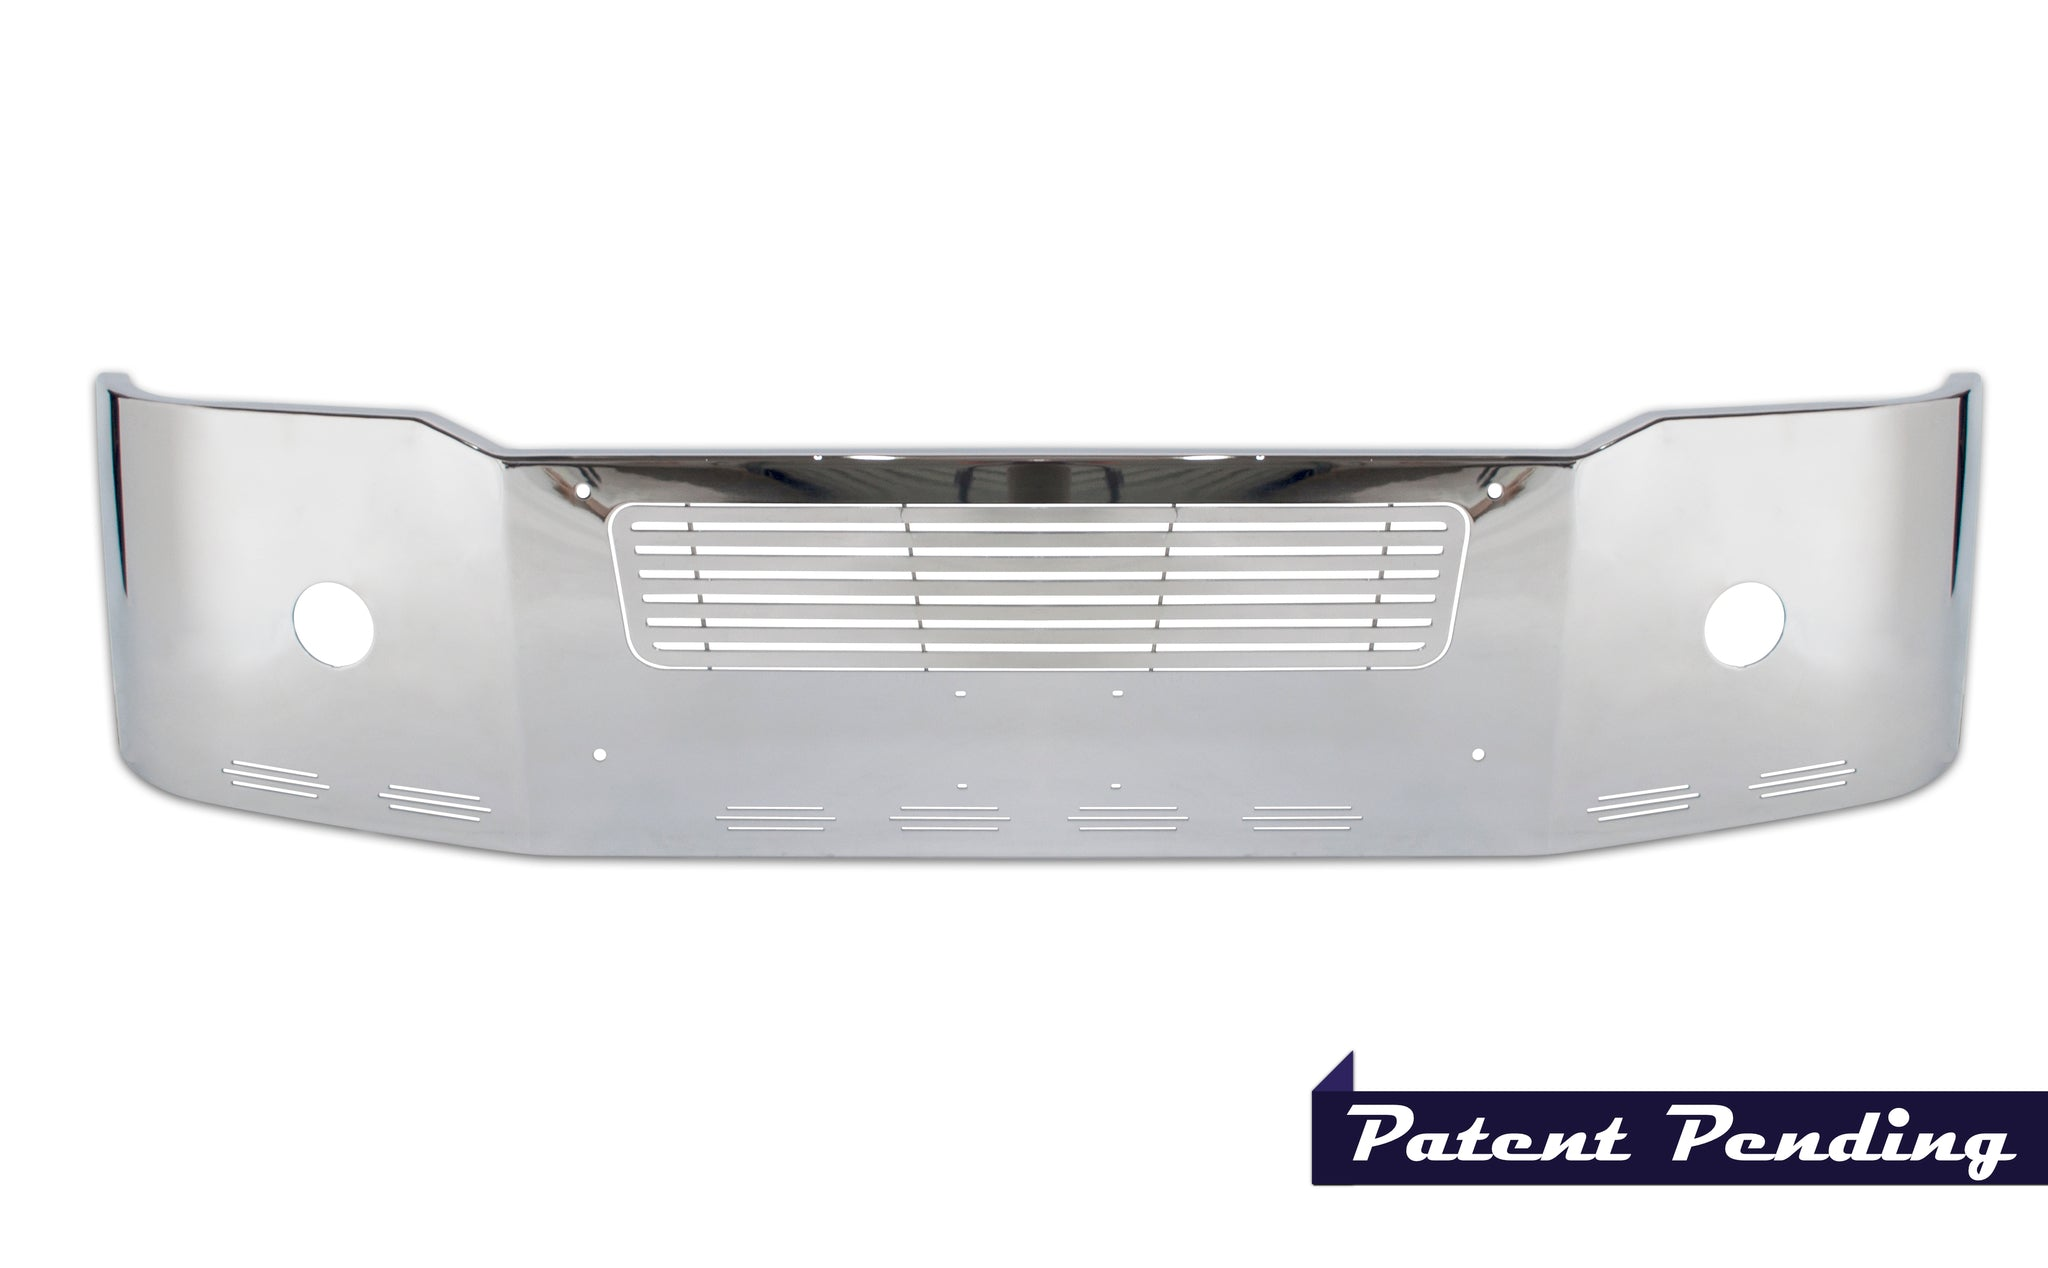 20 Freightliner Coronado Chrome Bumper Fits 2004 2009 Grille Ford 8000 Tractor Wiring Diagram Install